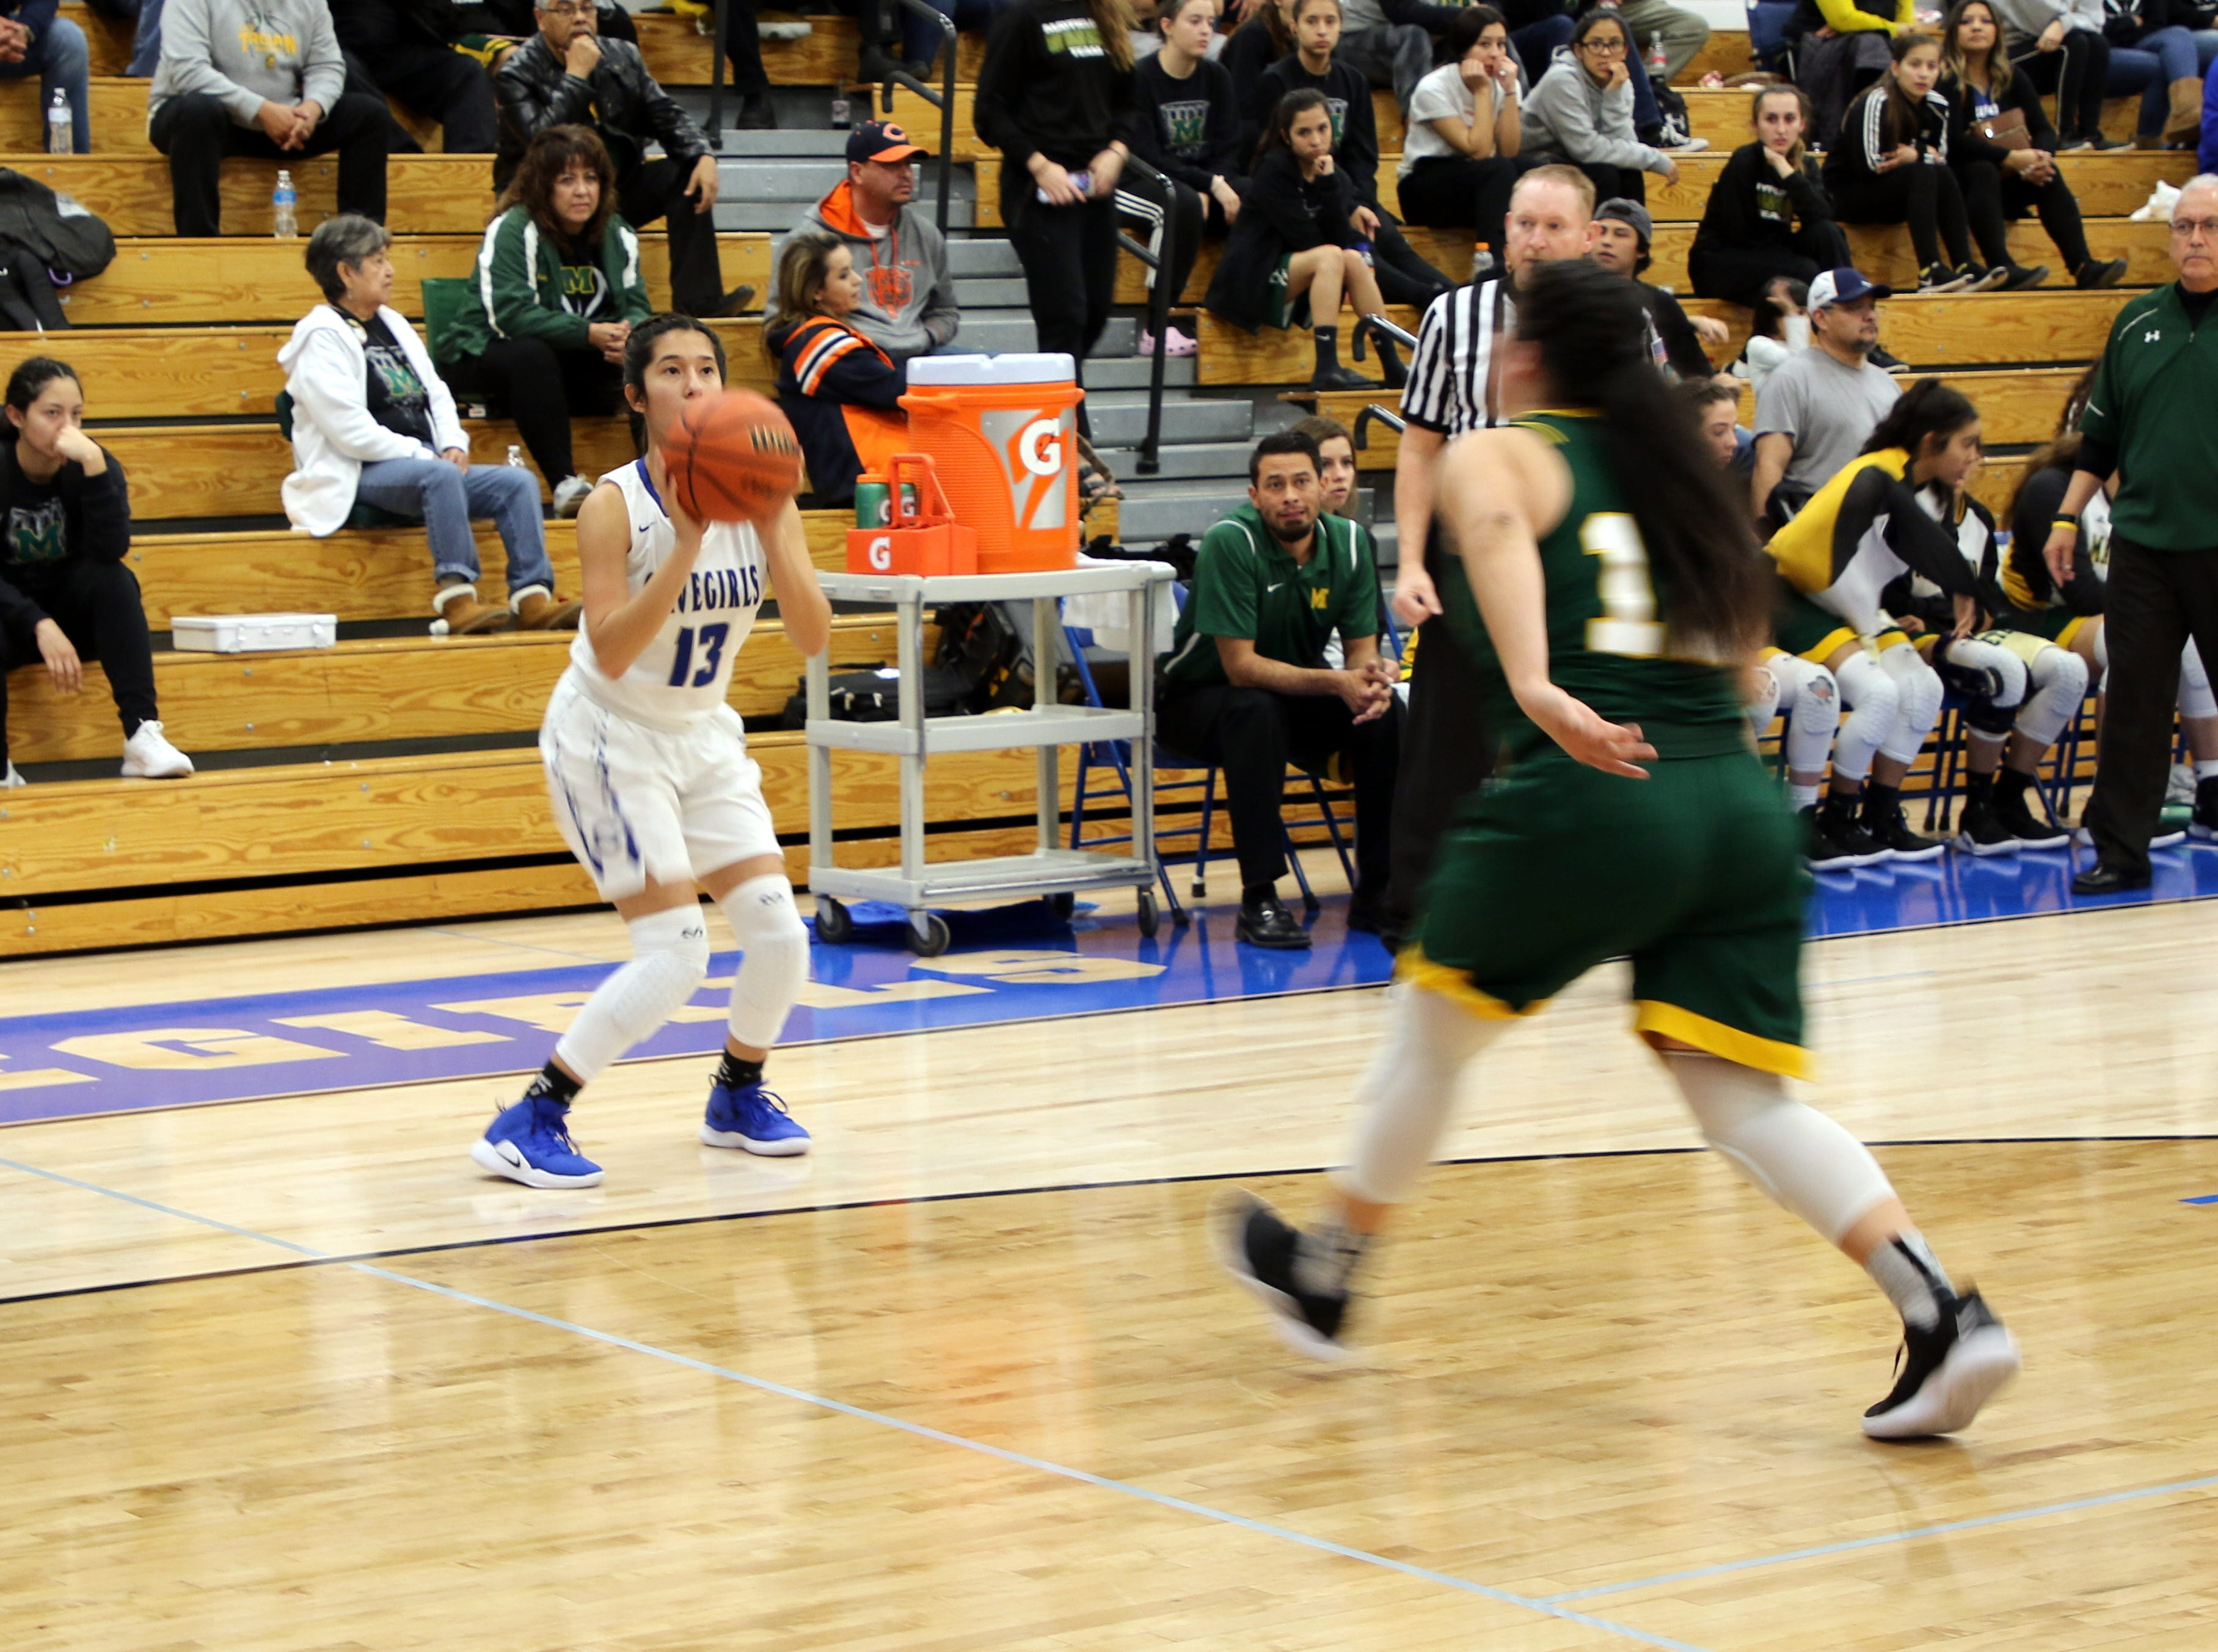 Tori Flores readies a three-point shot in the first half of Friday's game against Mayfield.